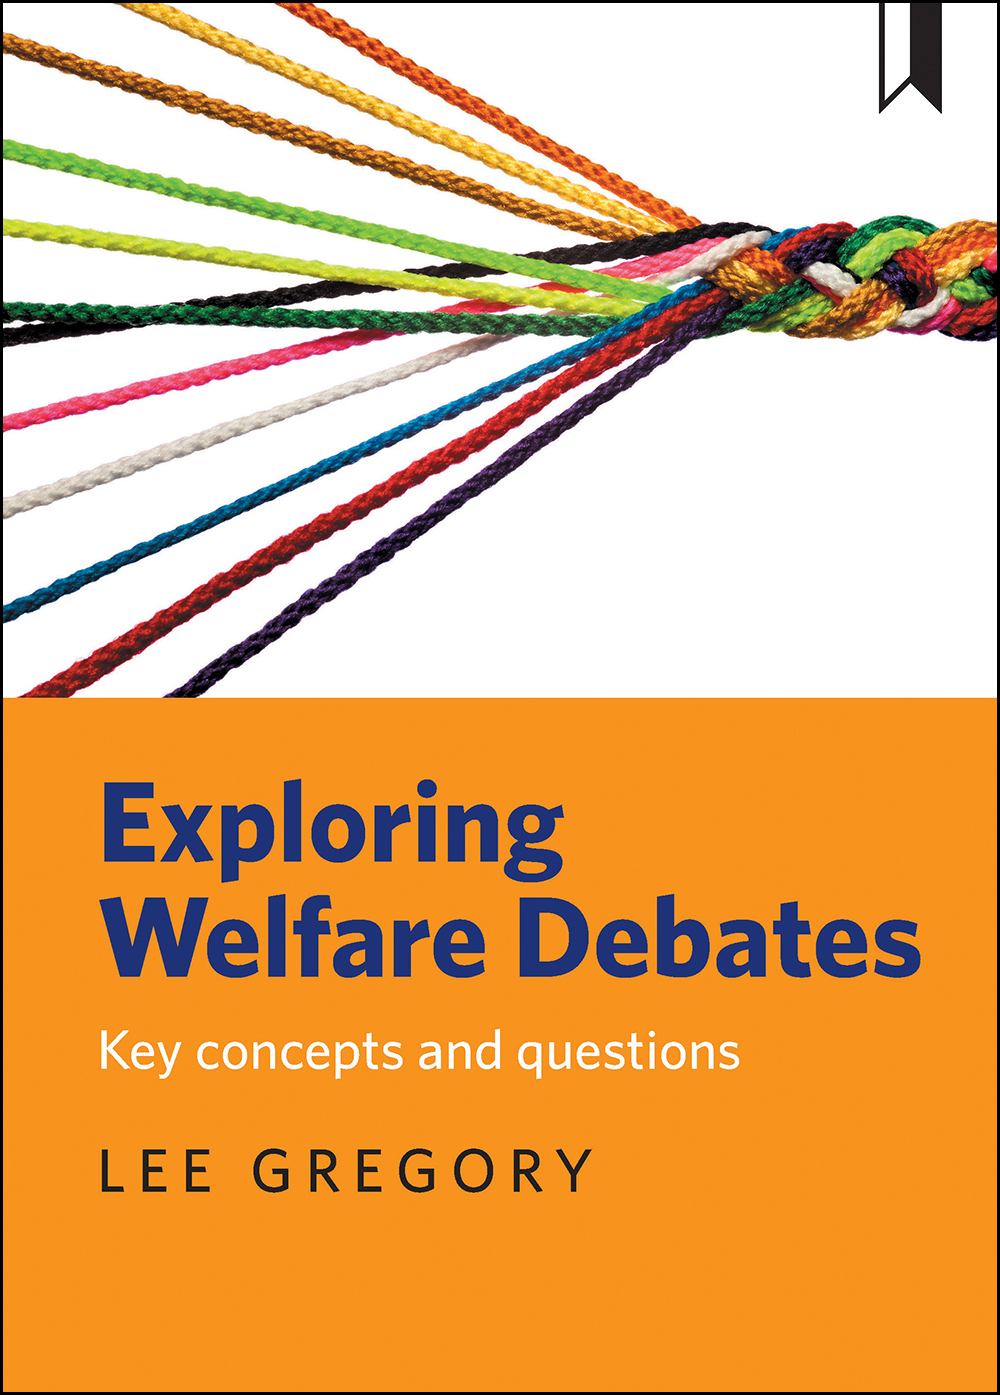 Conceptual issues in welfare debates